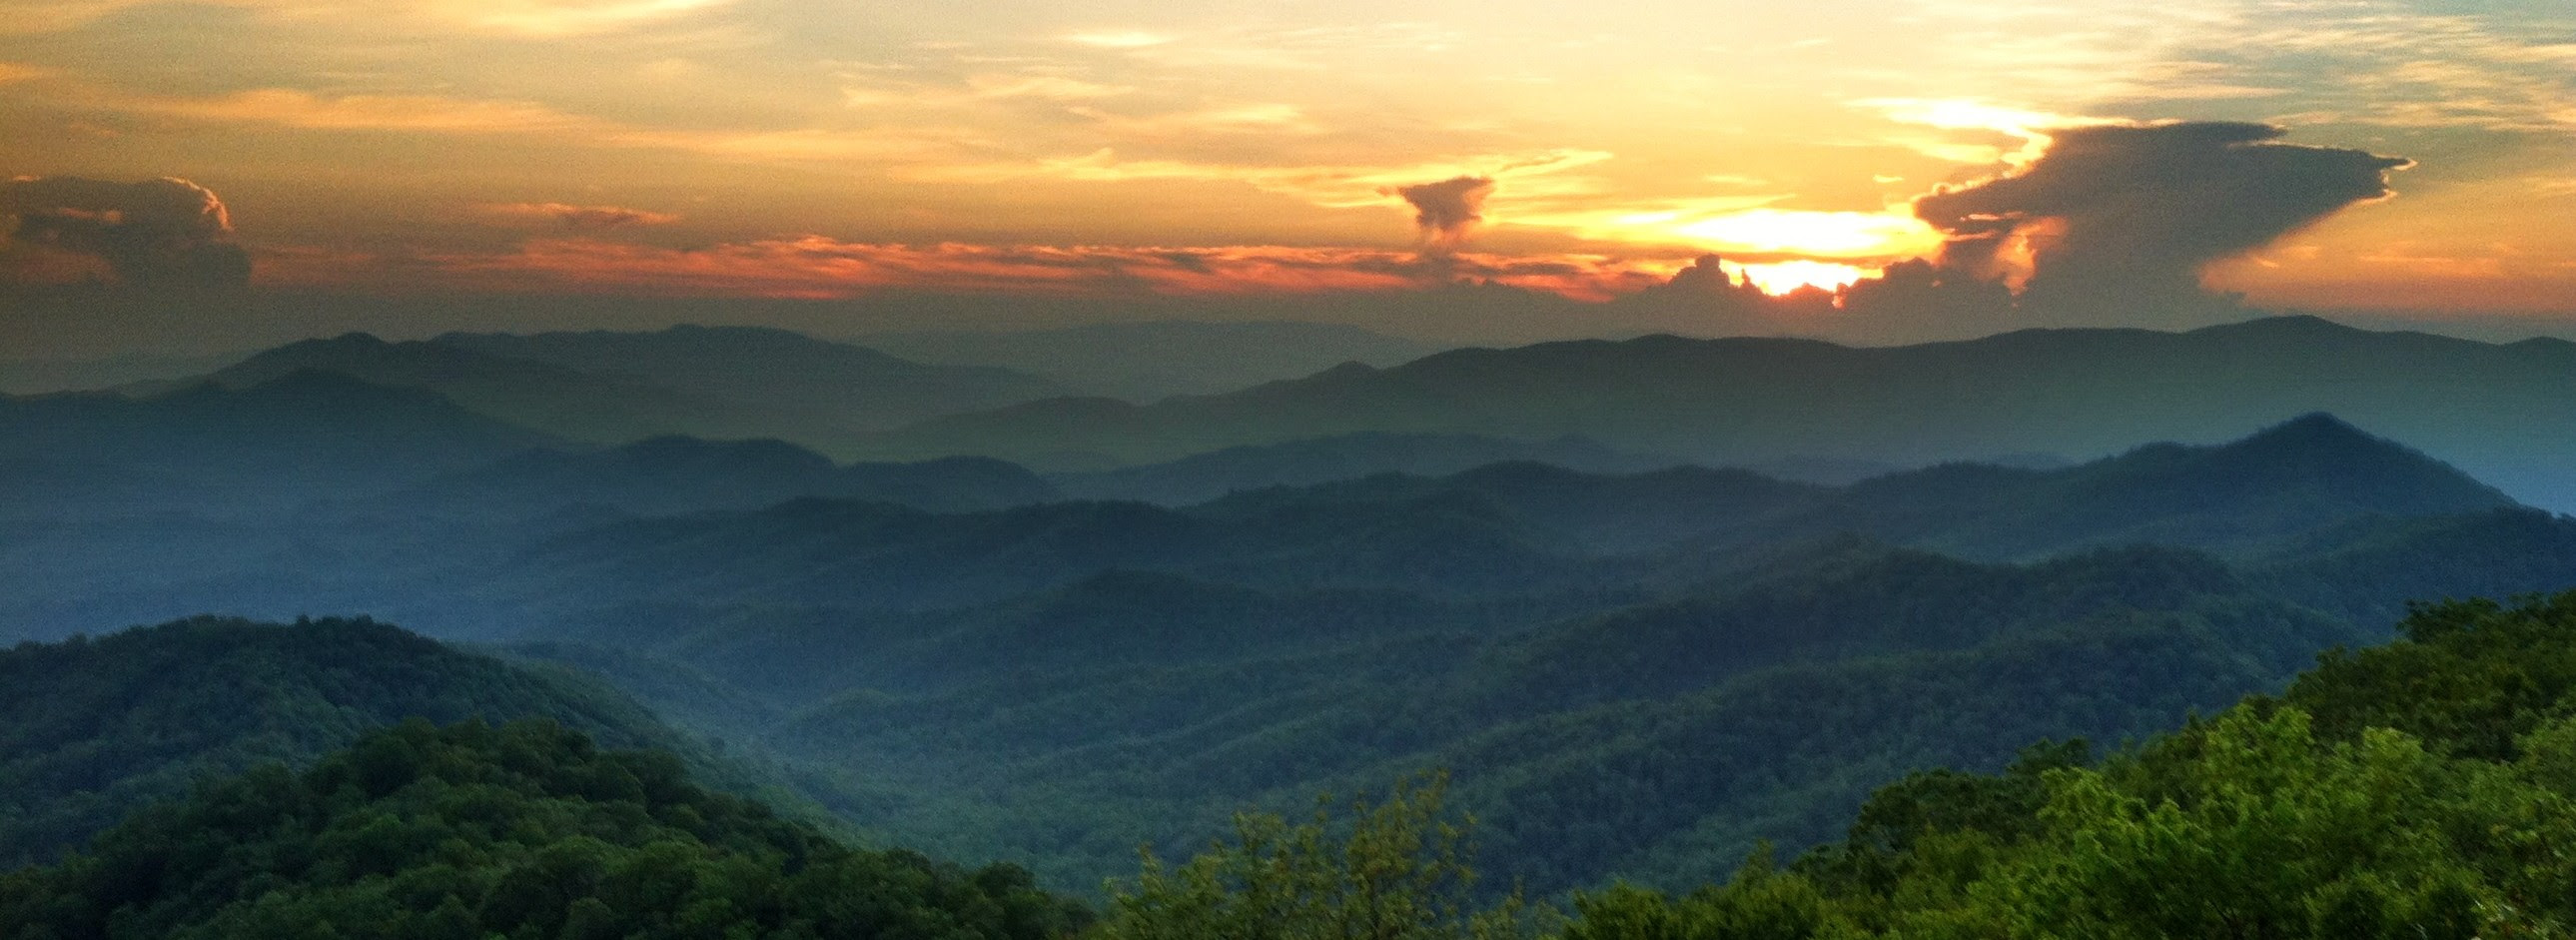 Why Vacation in Western North Carolina? - Yellow Rose Realty